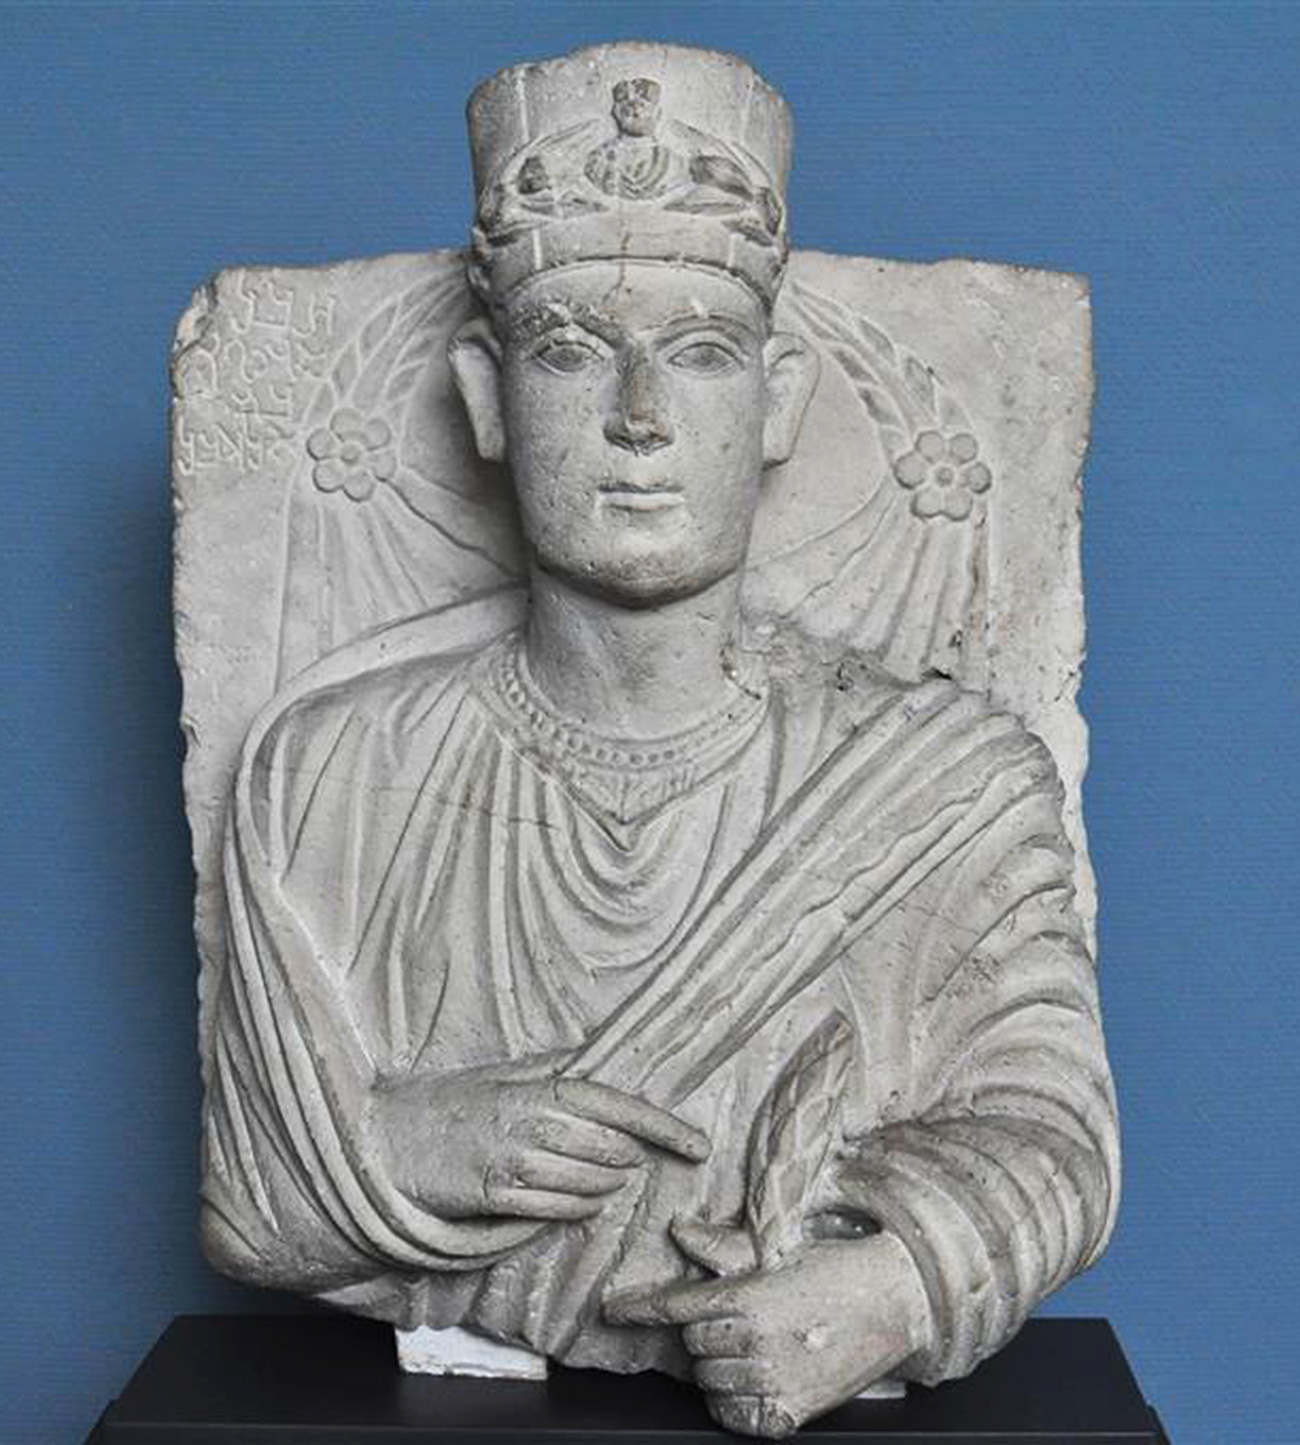 Limestone bust of an ancient Palmyrene priest wearing a tunic and ceremonial headgear